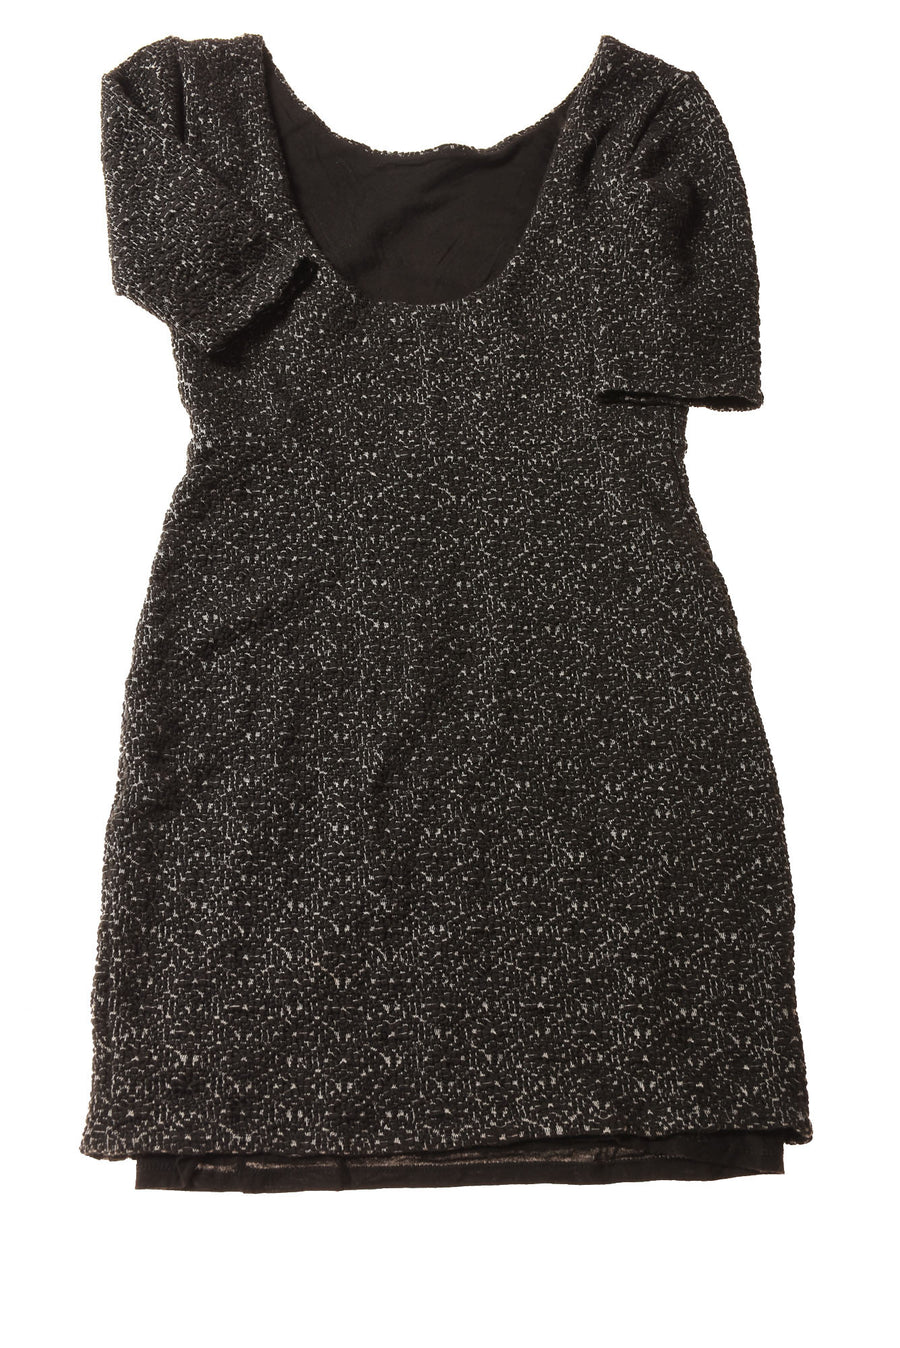 Women's Dress By Free People